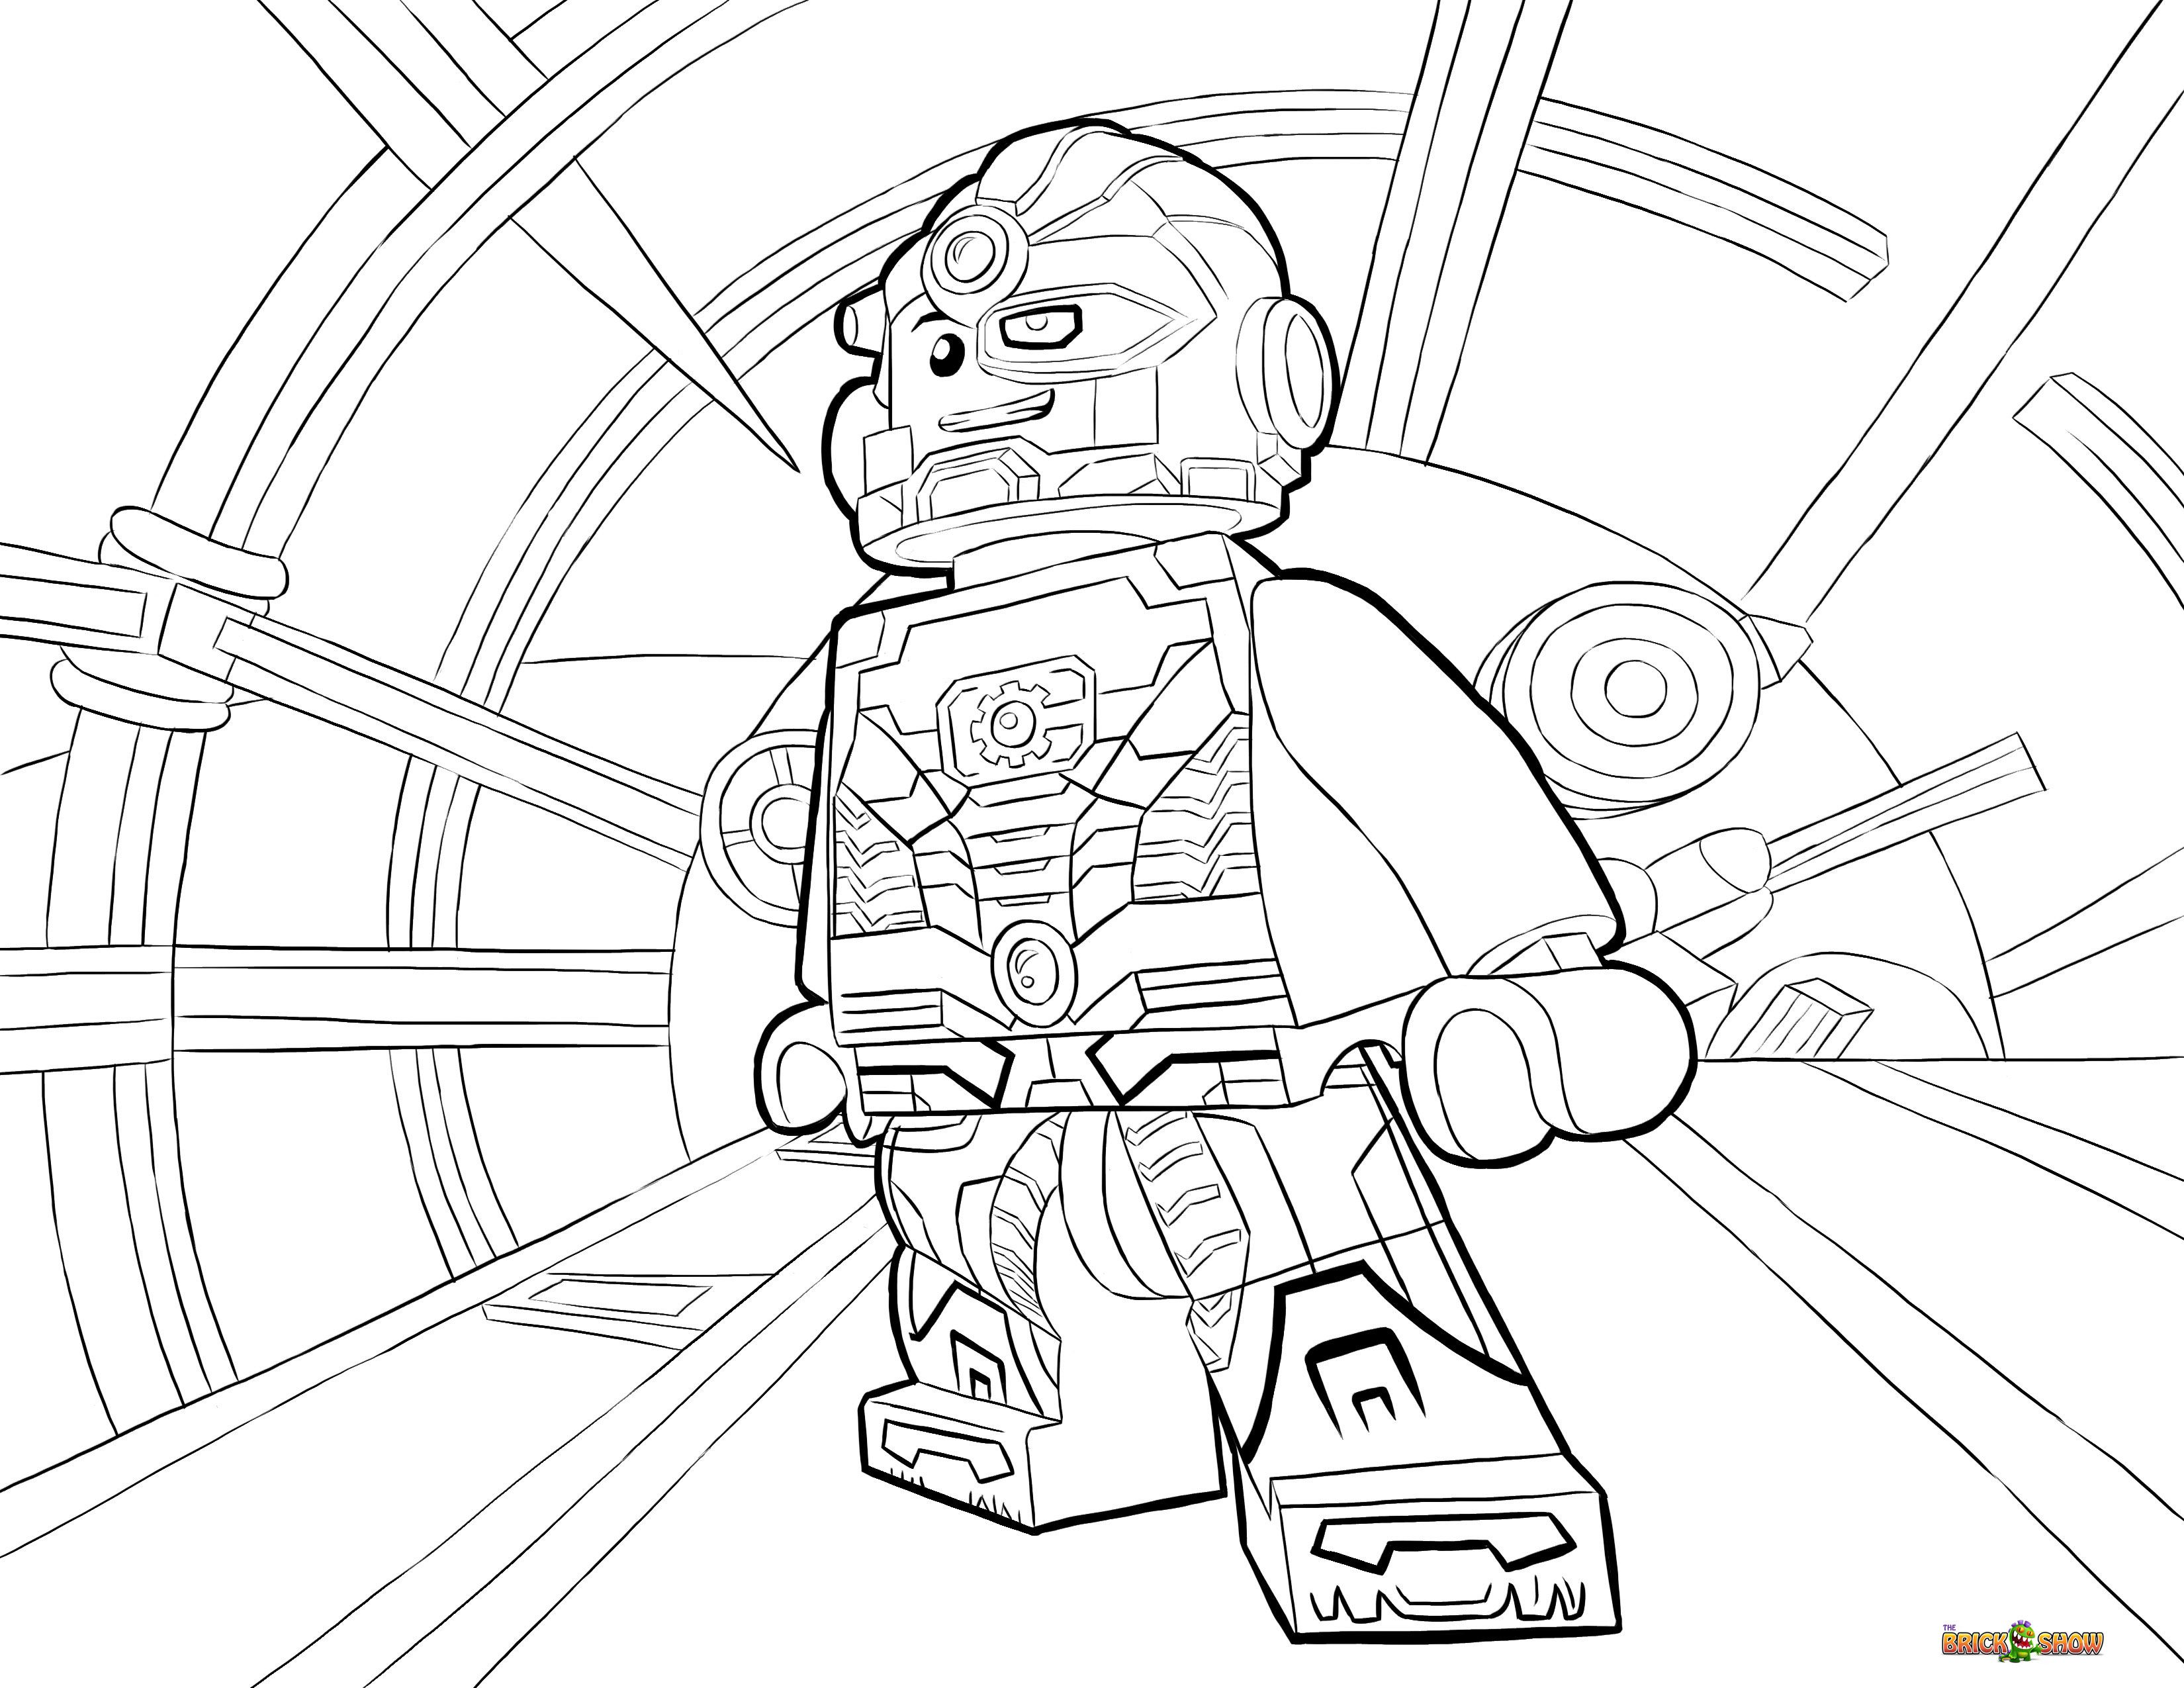 3300x2550 Lego Cyborg Coloring Pages